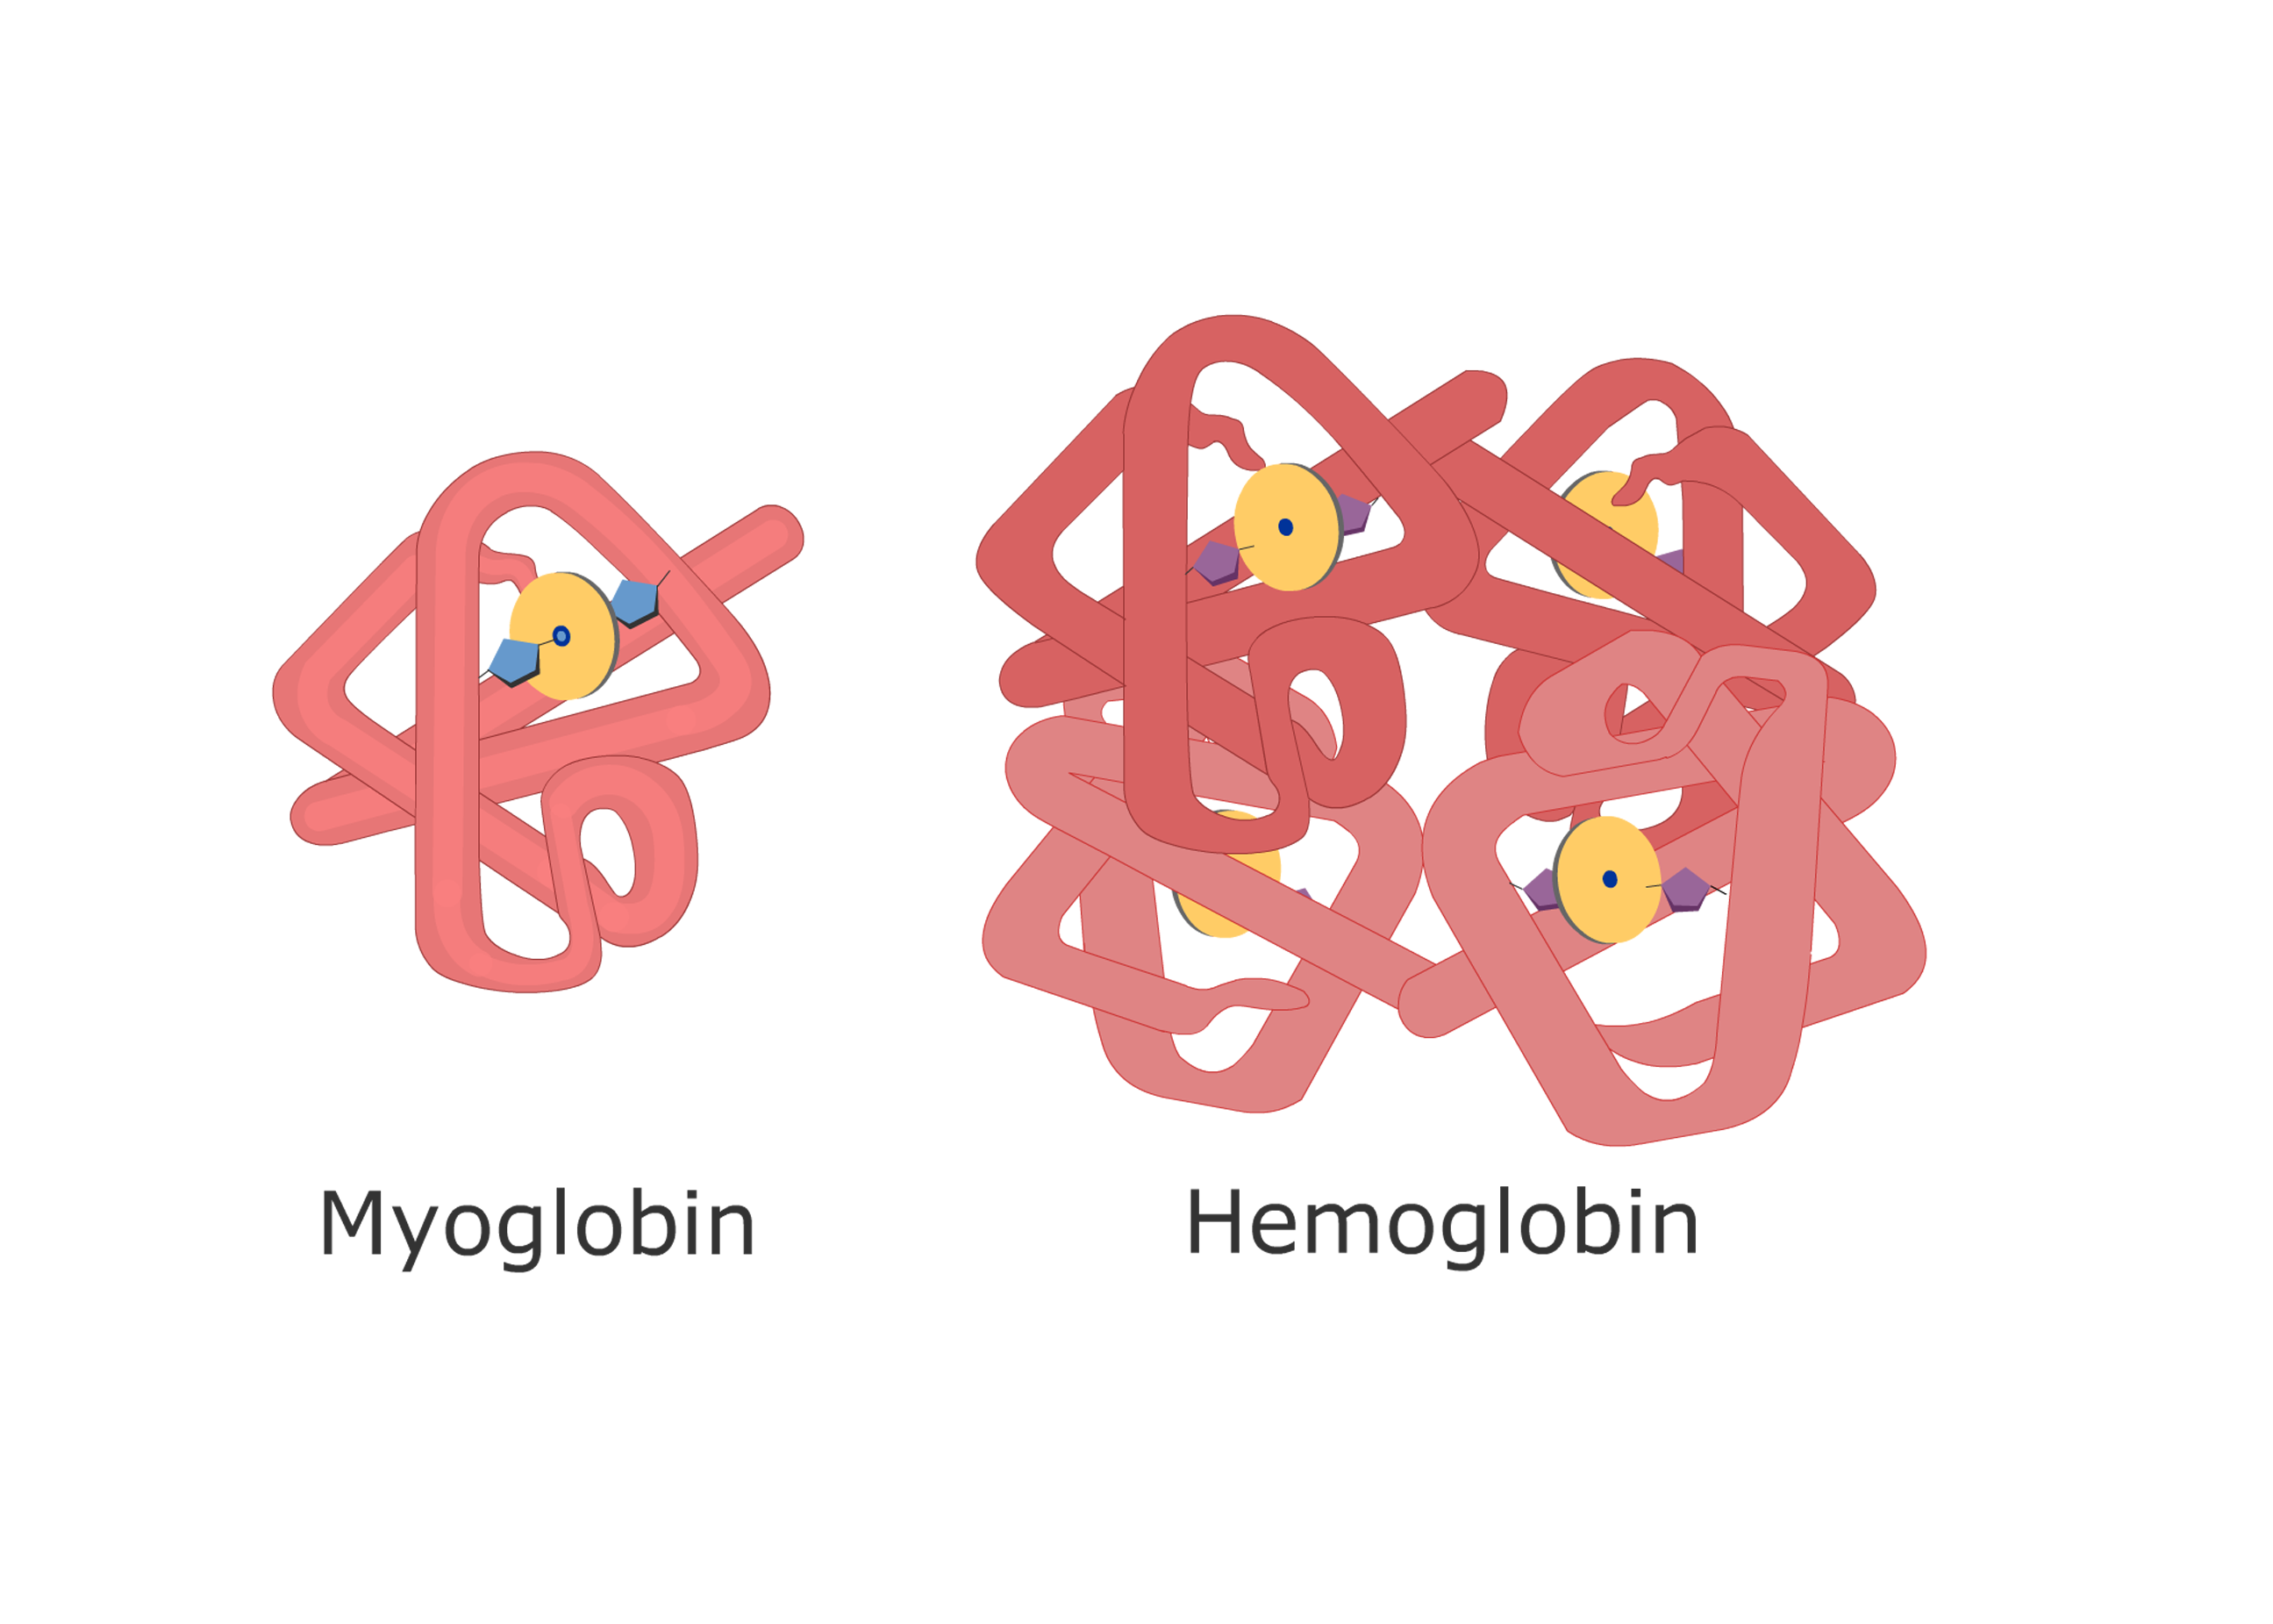 The myoglobin and hemoglobin molecules